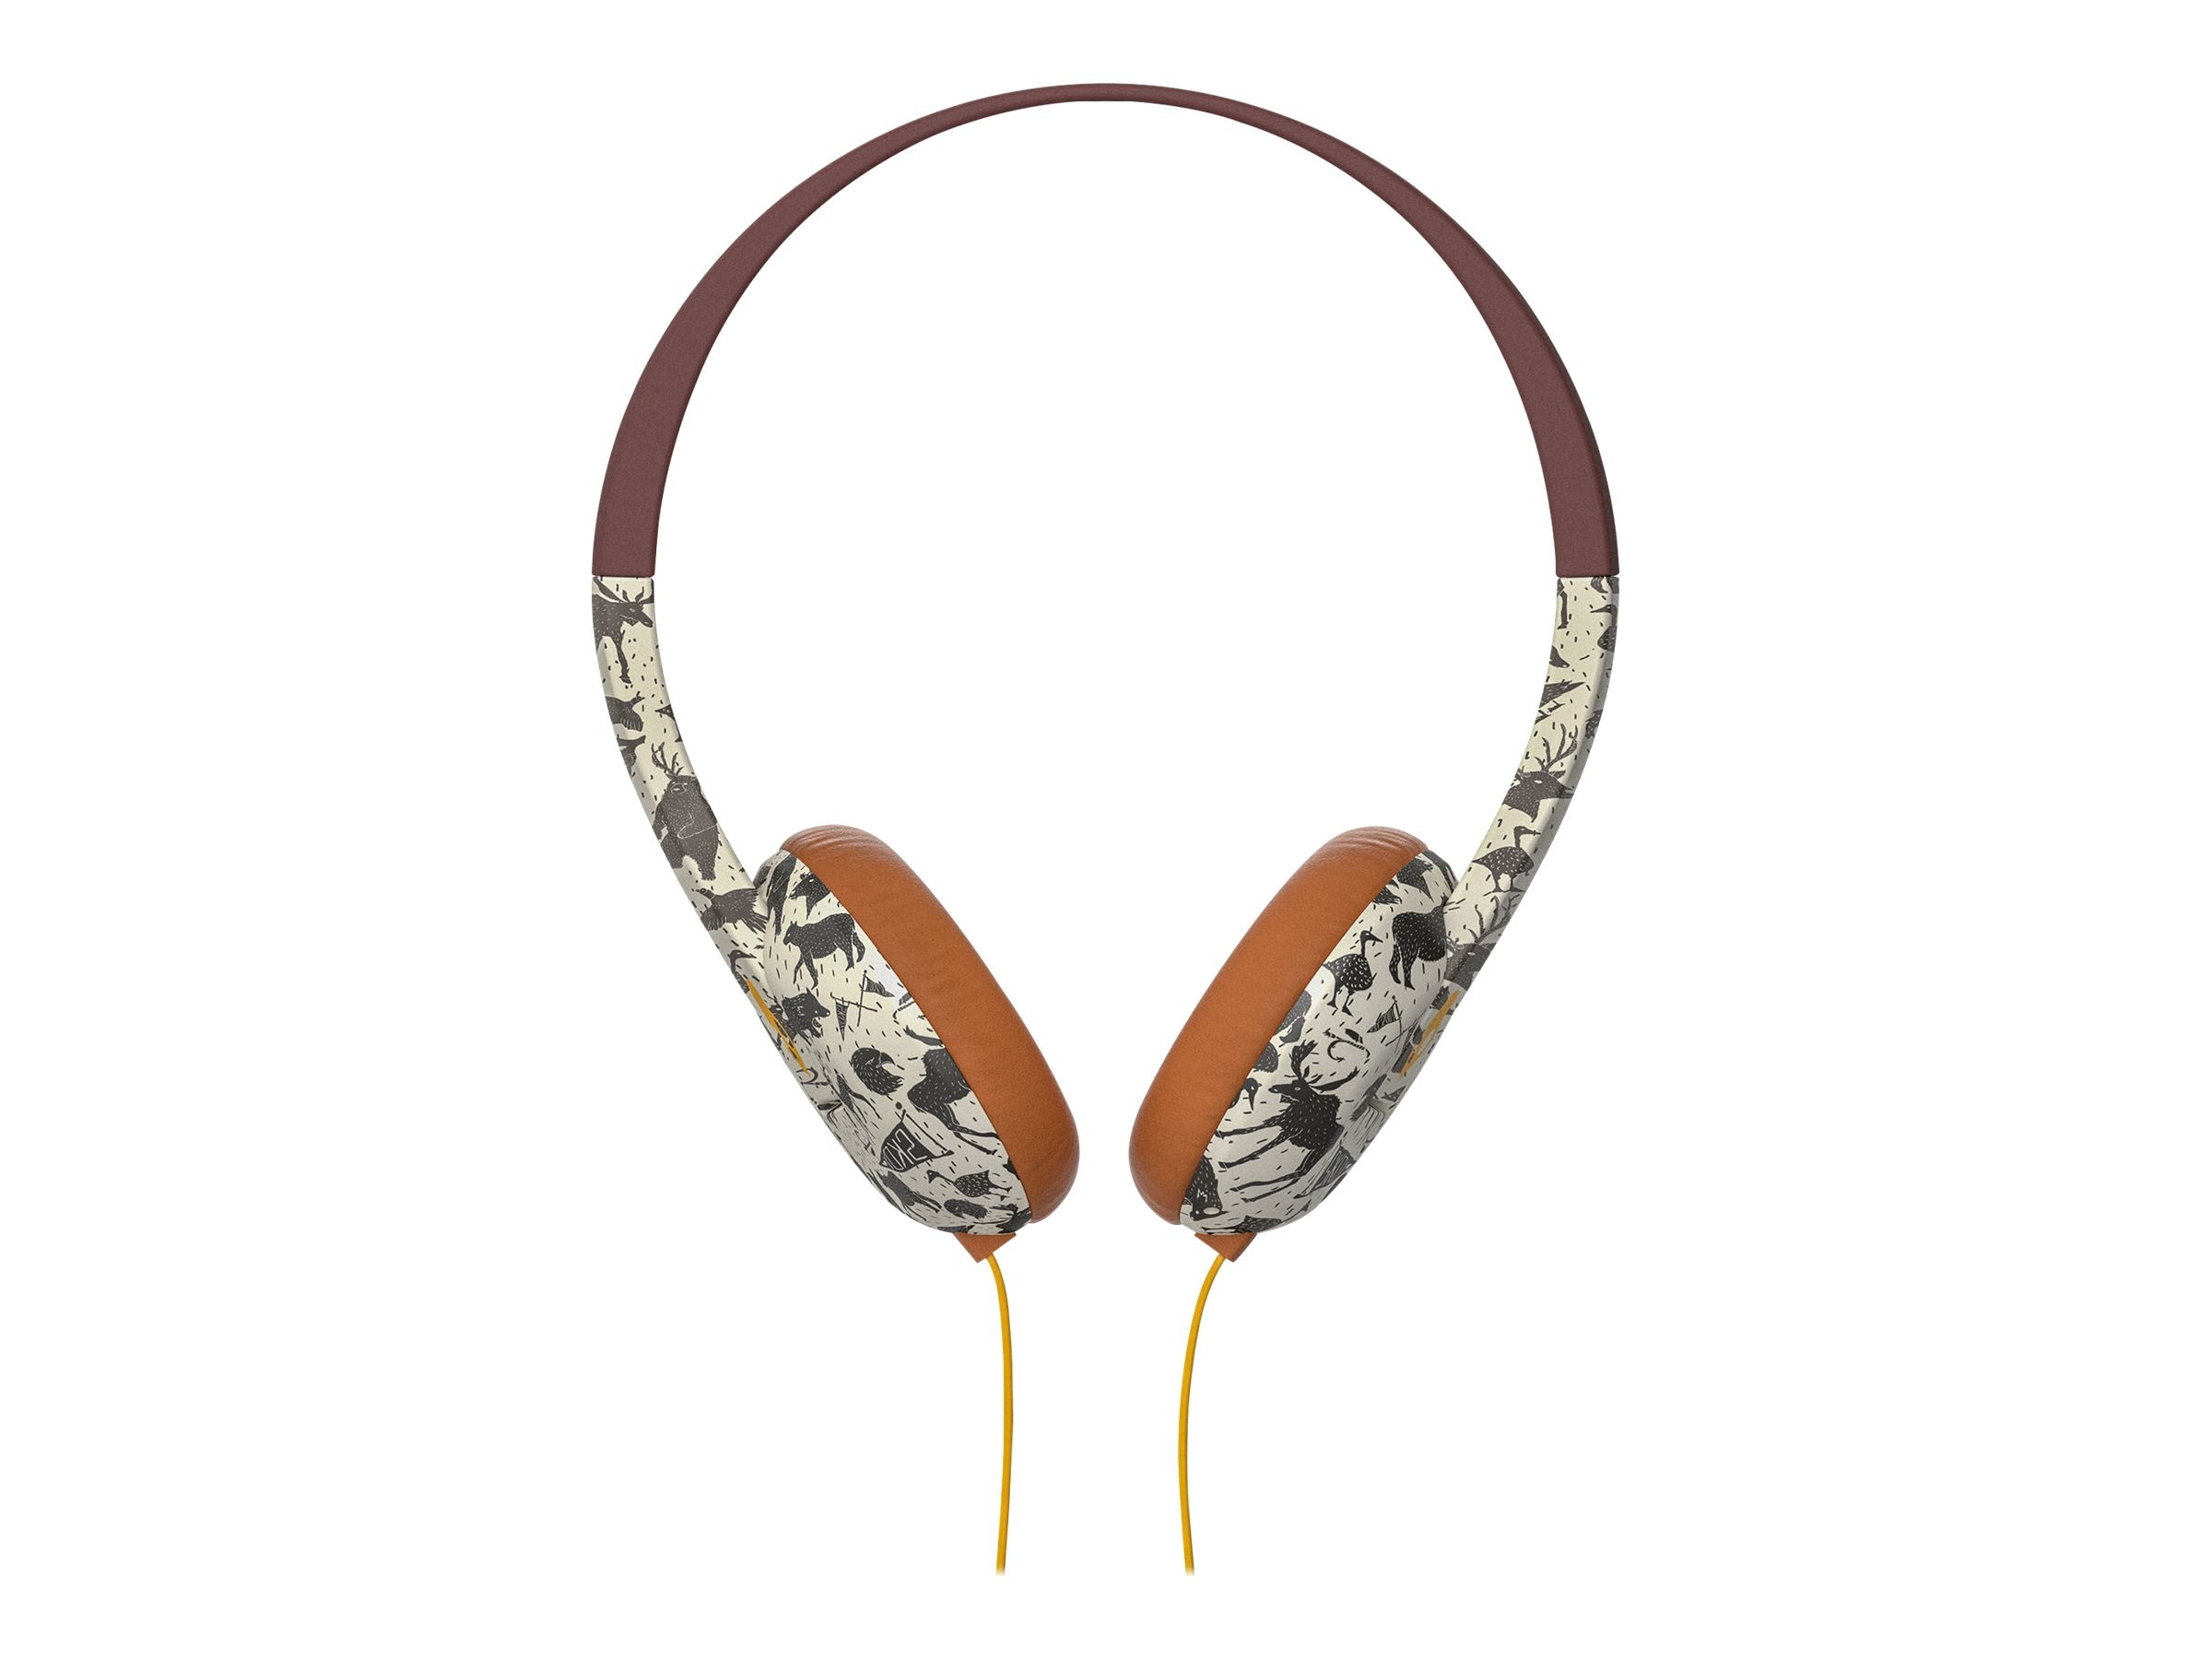 Skullcandy Uproar Headphones - Explore Animal Mustard, S5URHT-452